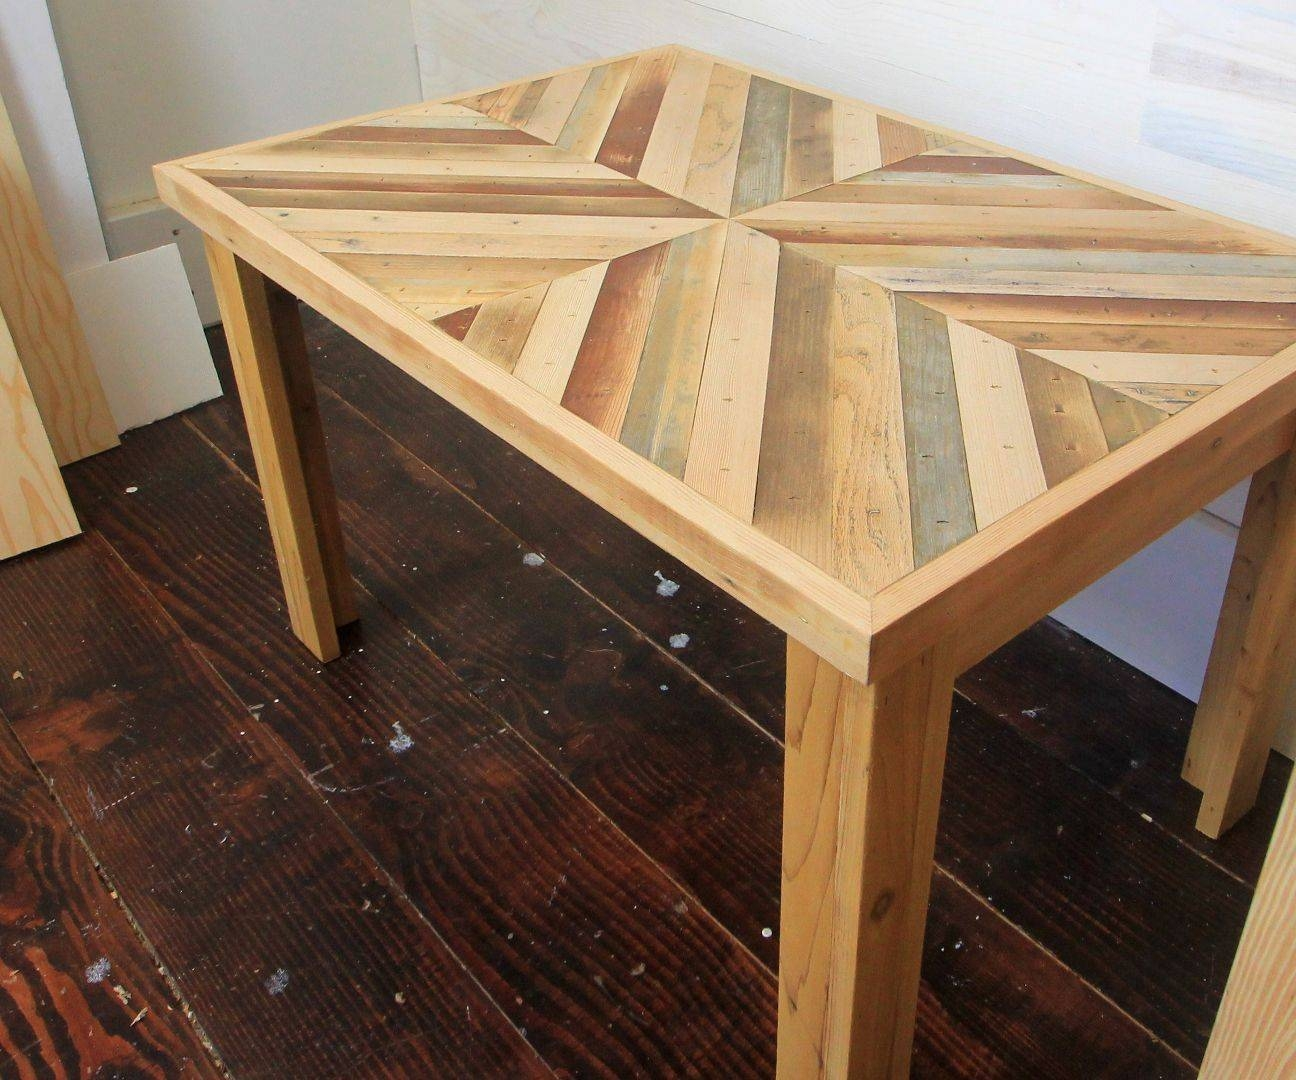 Diy Rustic Style Coffee Table With Reclaimed Wood (With Pictures) within Rustic Style Coffee Tables (Image 11 of 30)